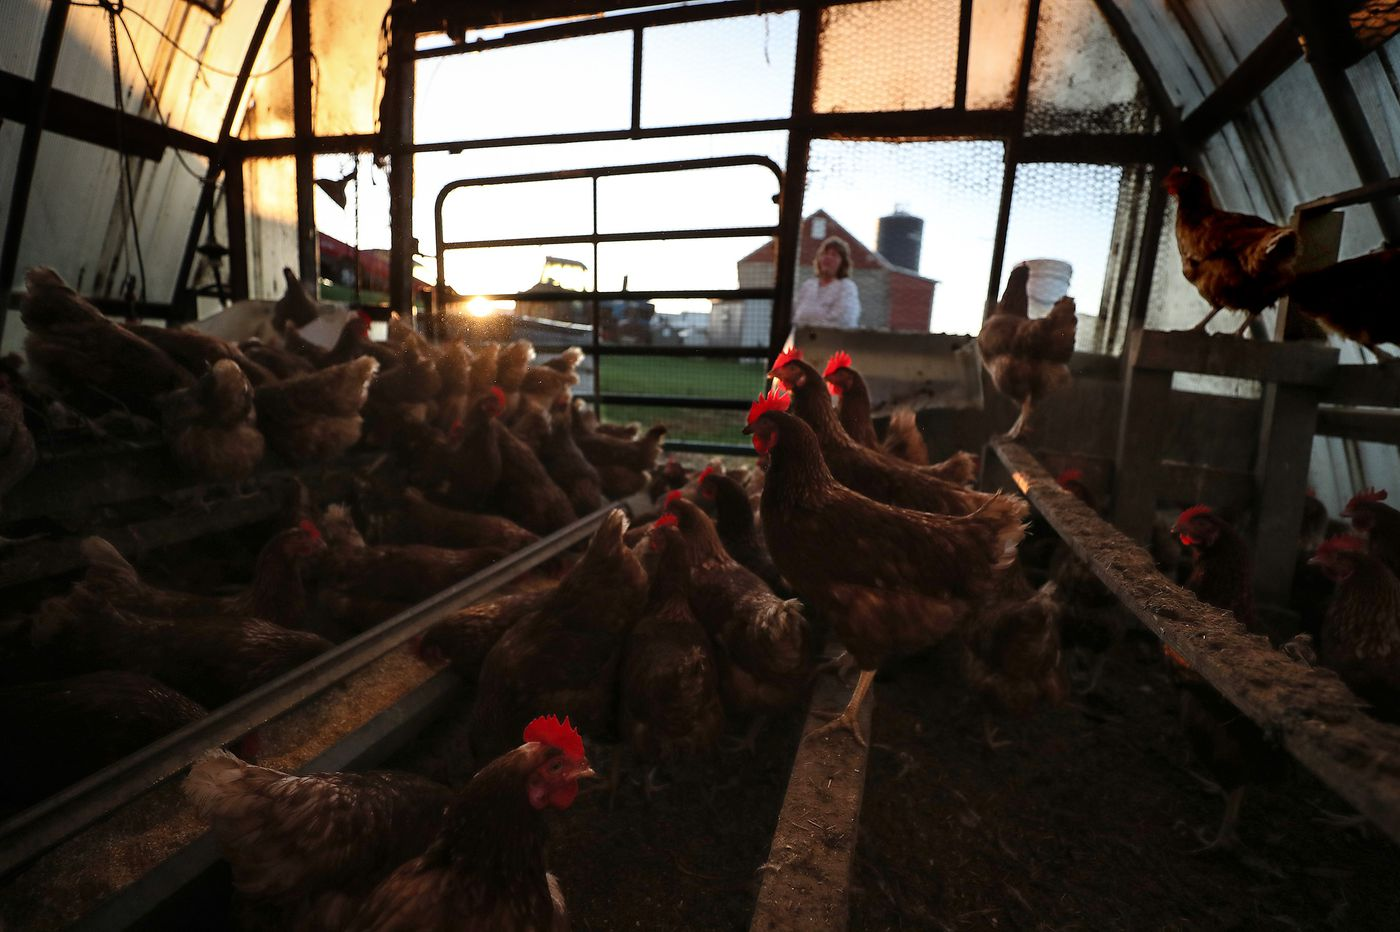 Why Pa. could see more chicken farming due to climate change